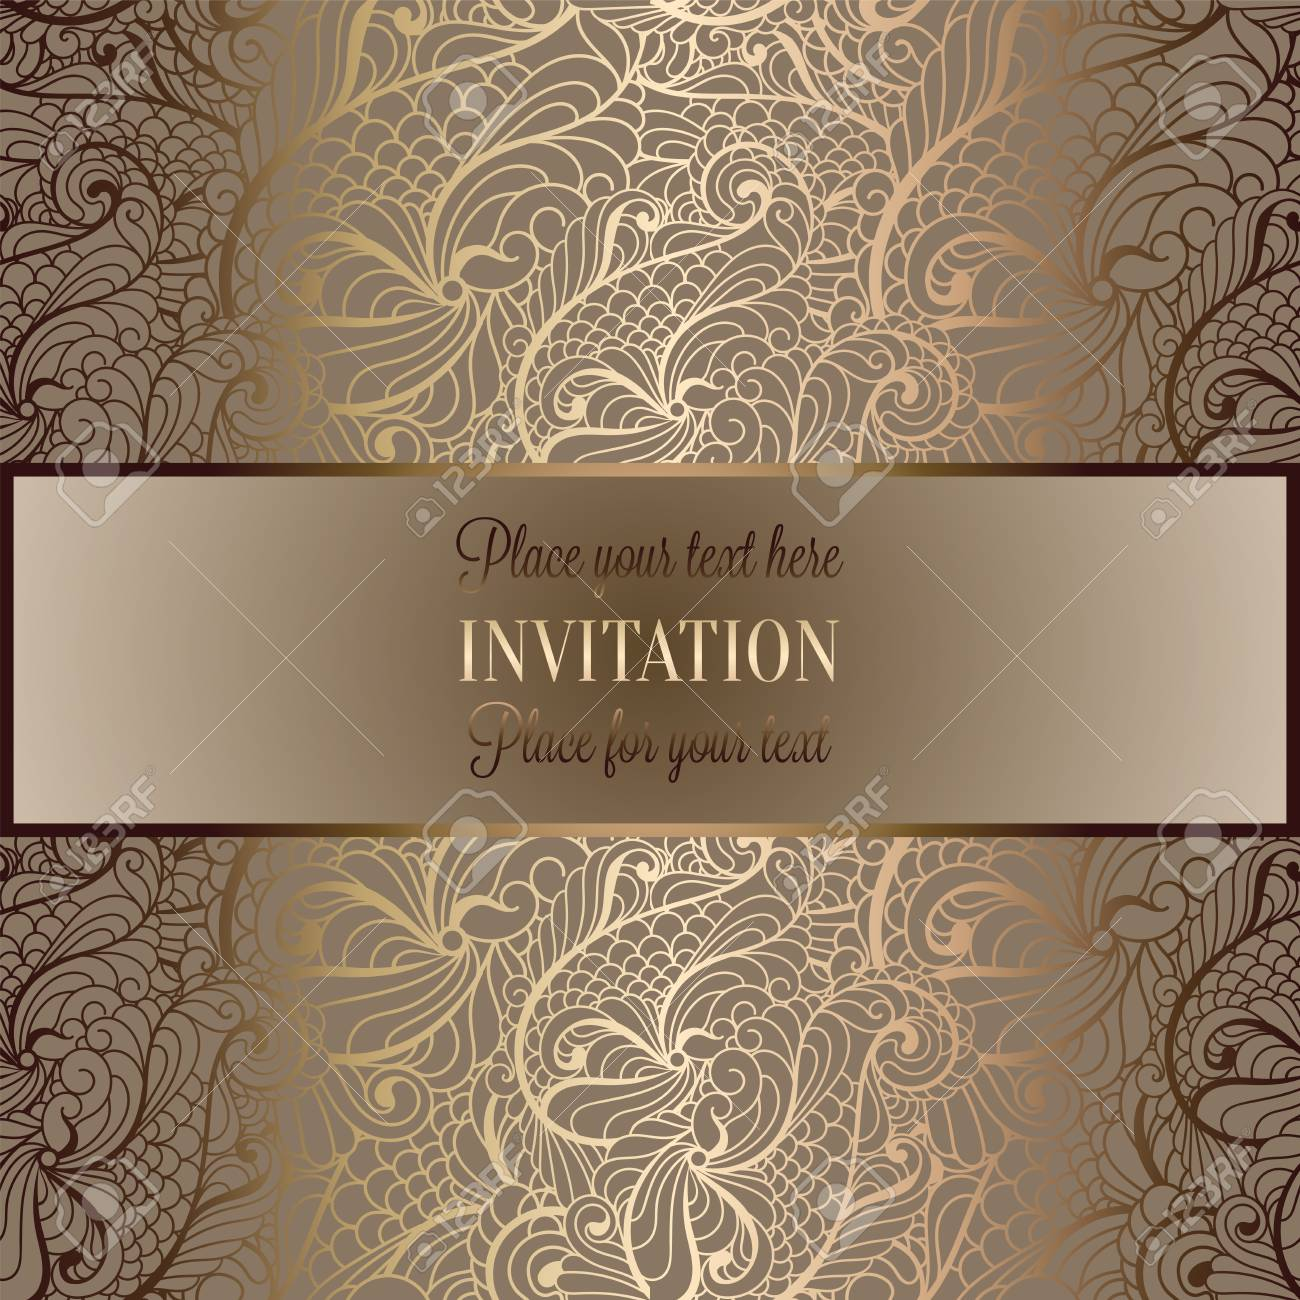 Abstract Background Luxury Beige And Gold Vintage Frame Victorian Banner Damask Floral Wallpaper Ornaments Invitation Card Baroque Style Booklet